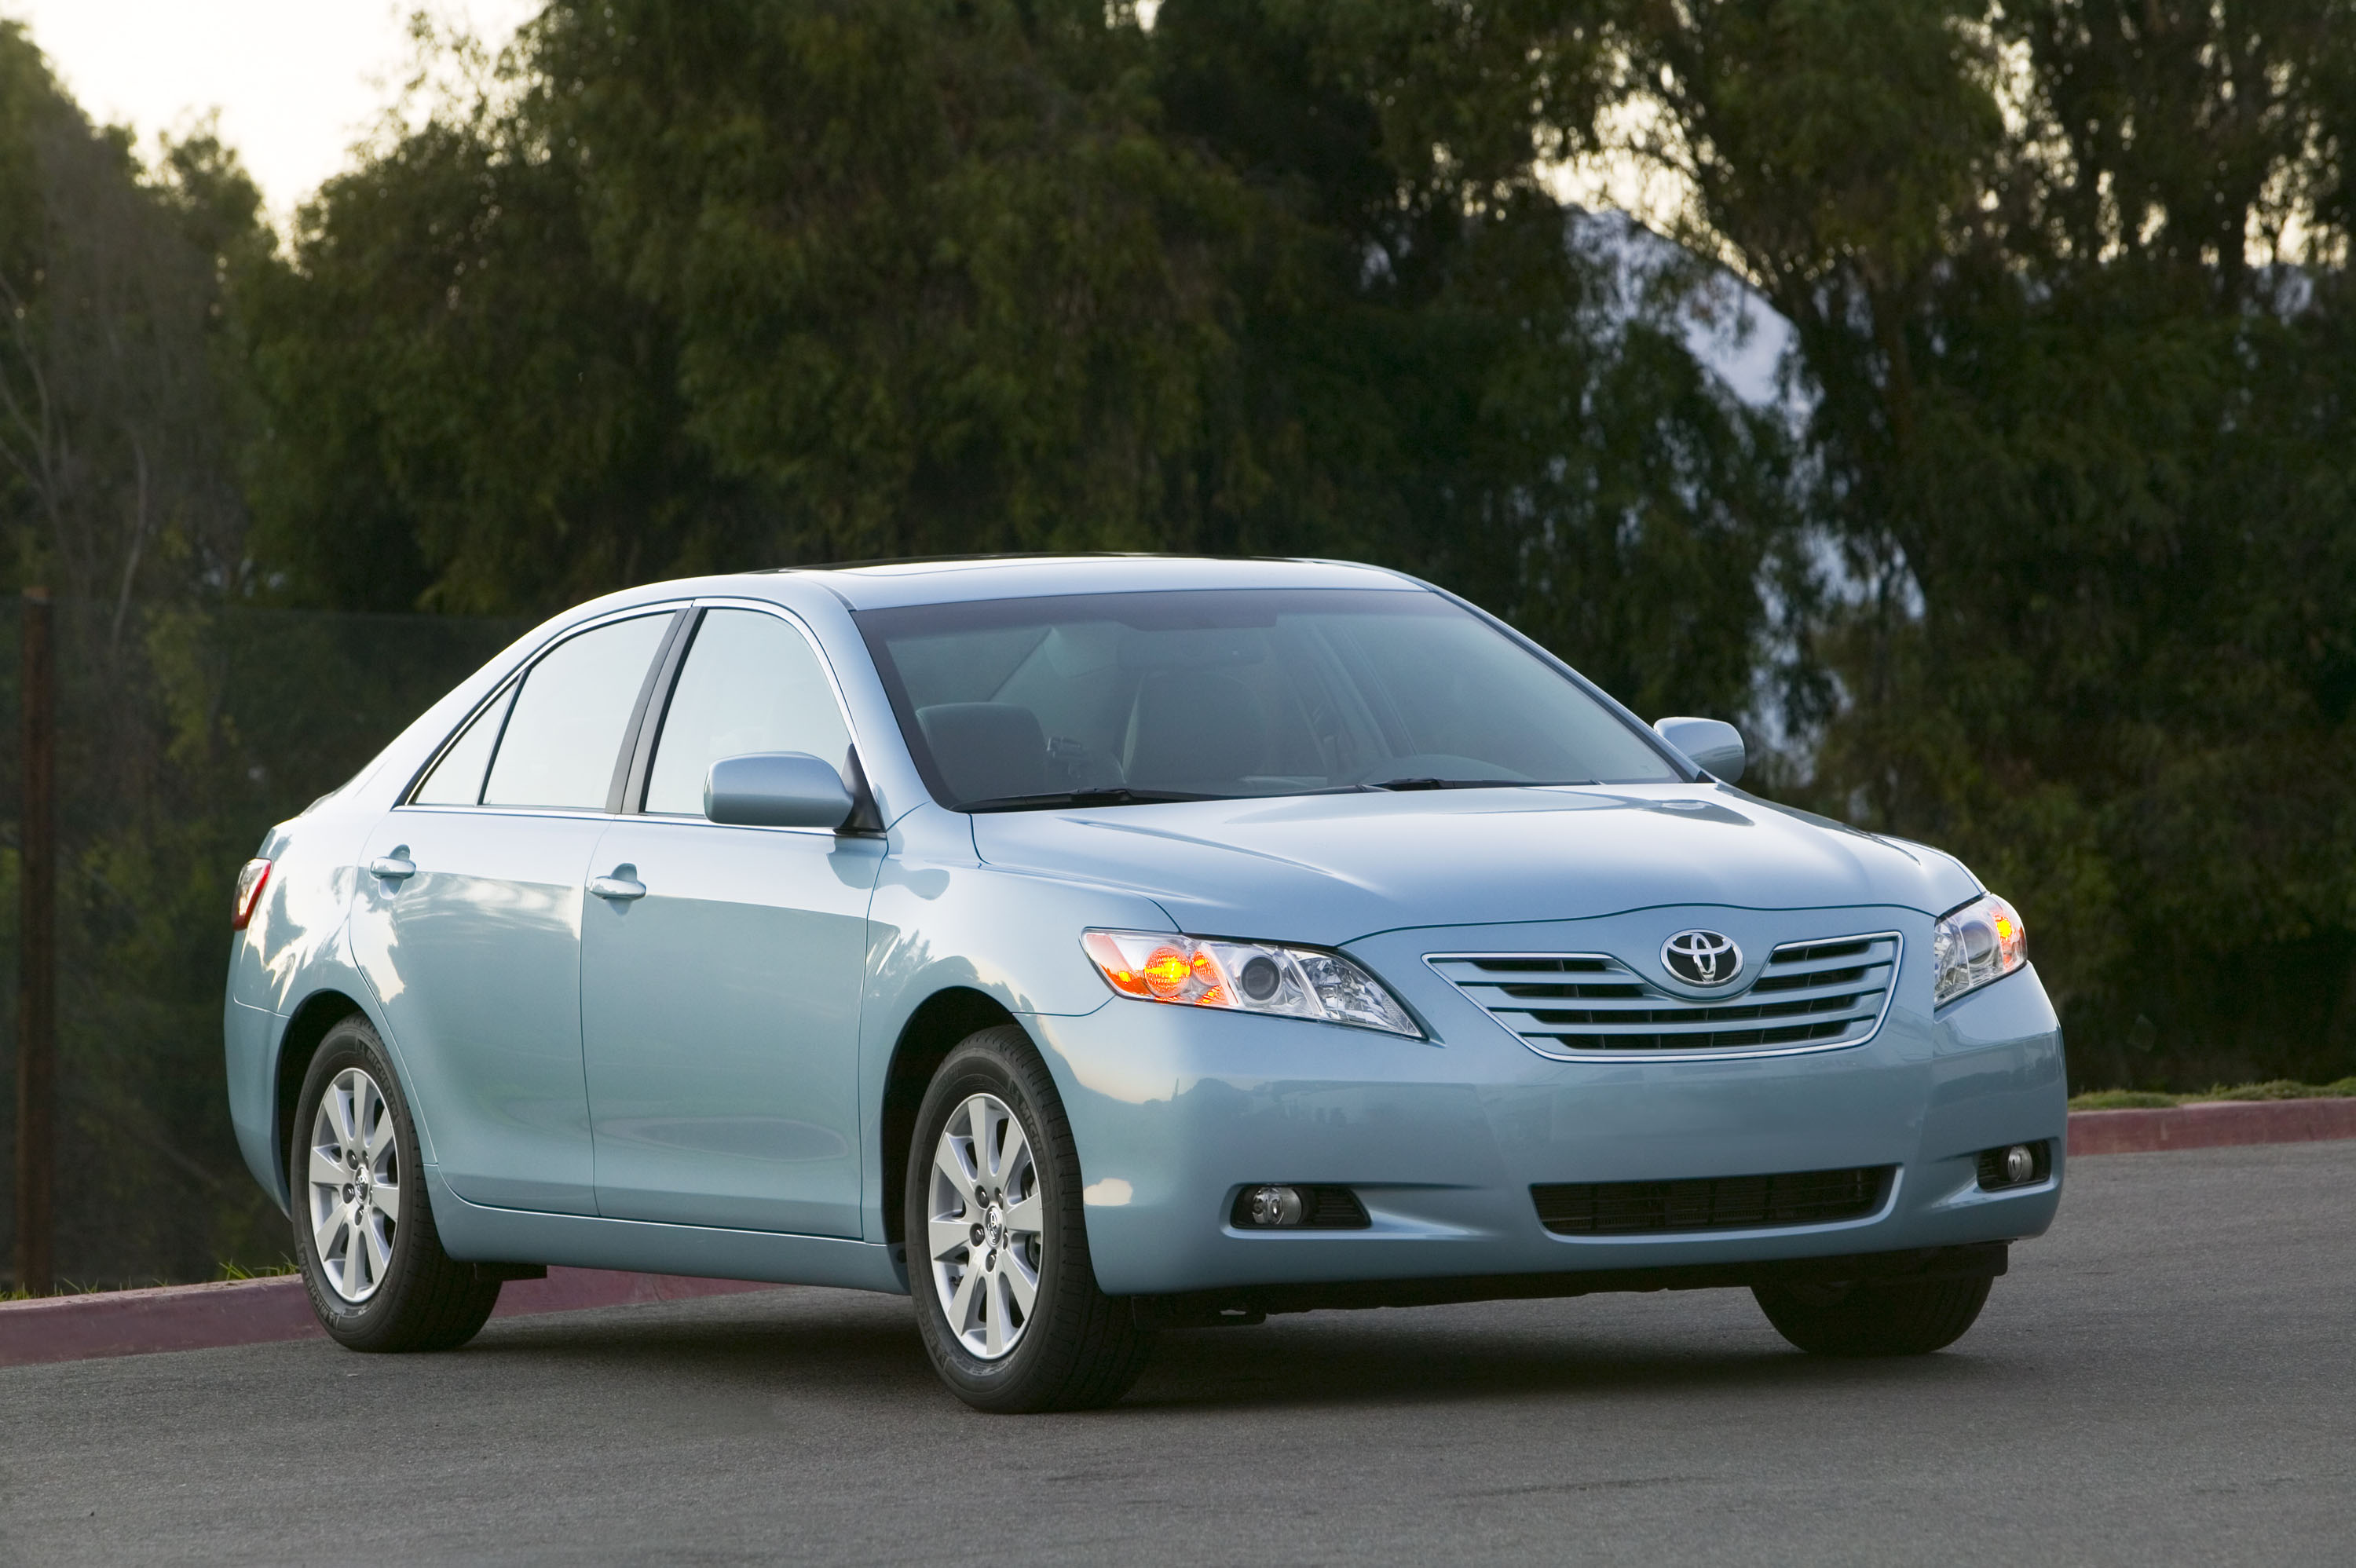 nairaland camry for good used toyota condition in sale nigeria general